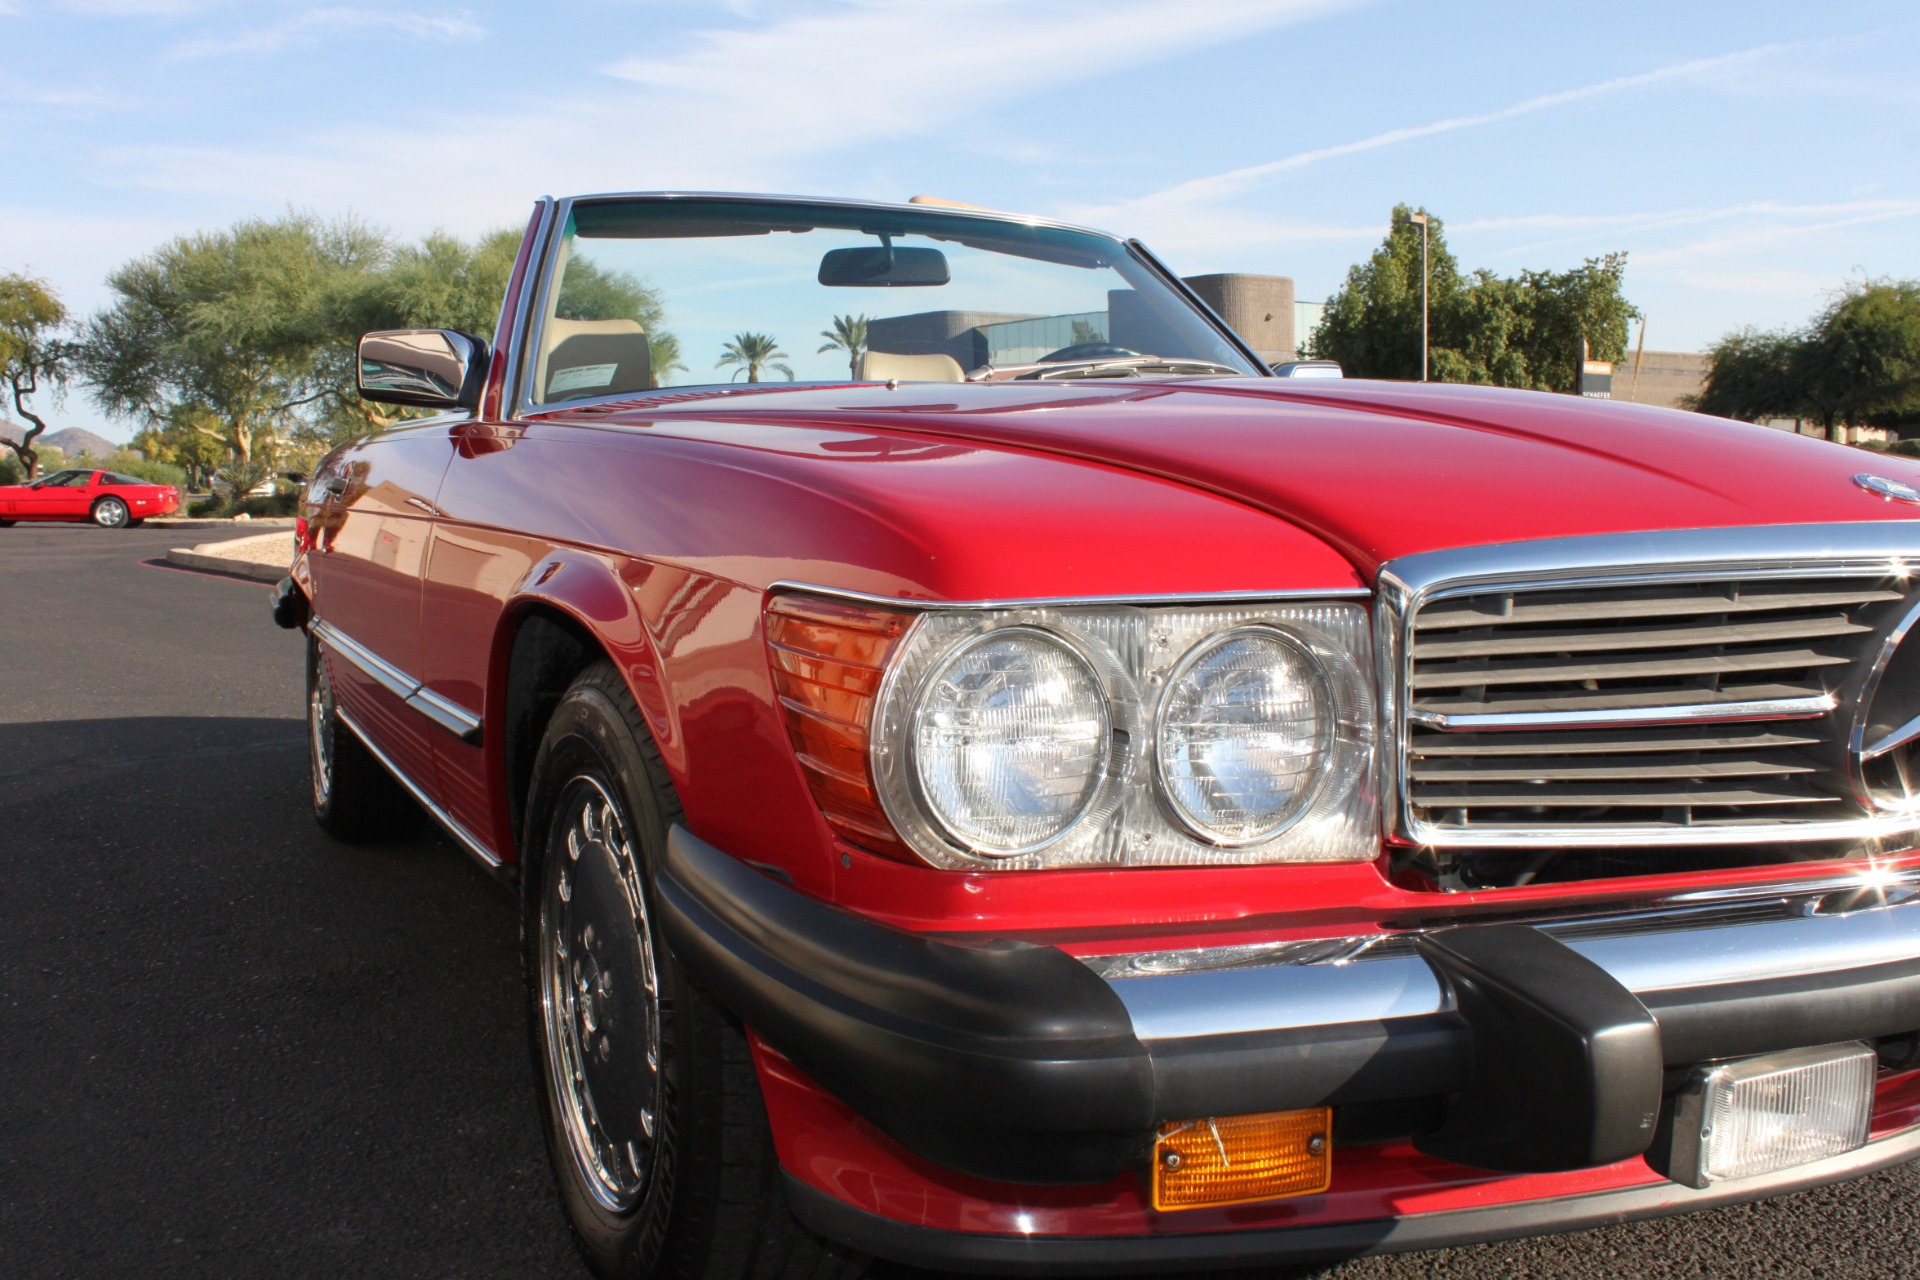 Used-1989-Mercedes-Benz-560-Series-560SL-Alfa-Romeo